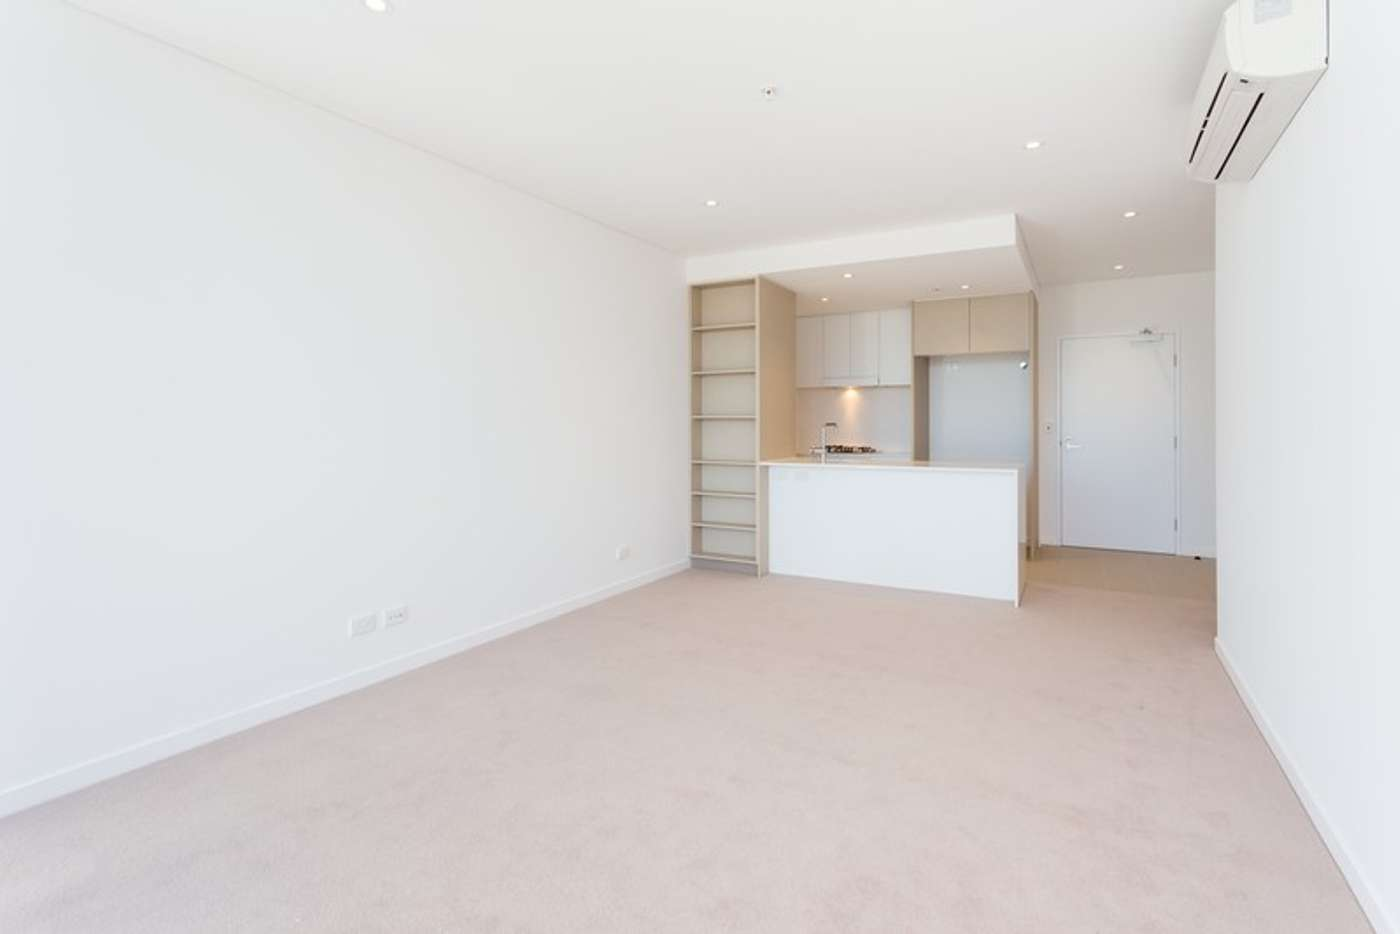 Main view of Homely apartment listing, 10615/320 MacArthur Ave, Hamilton QLD 4007